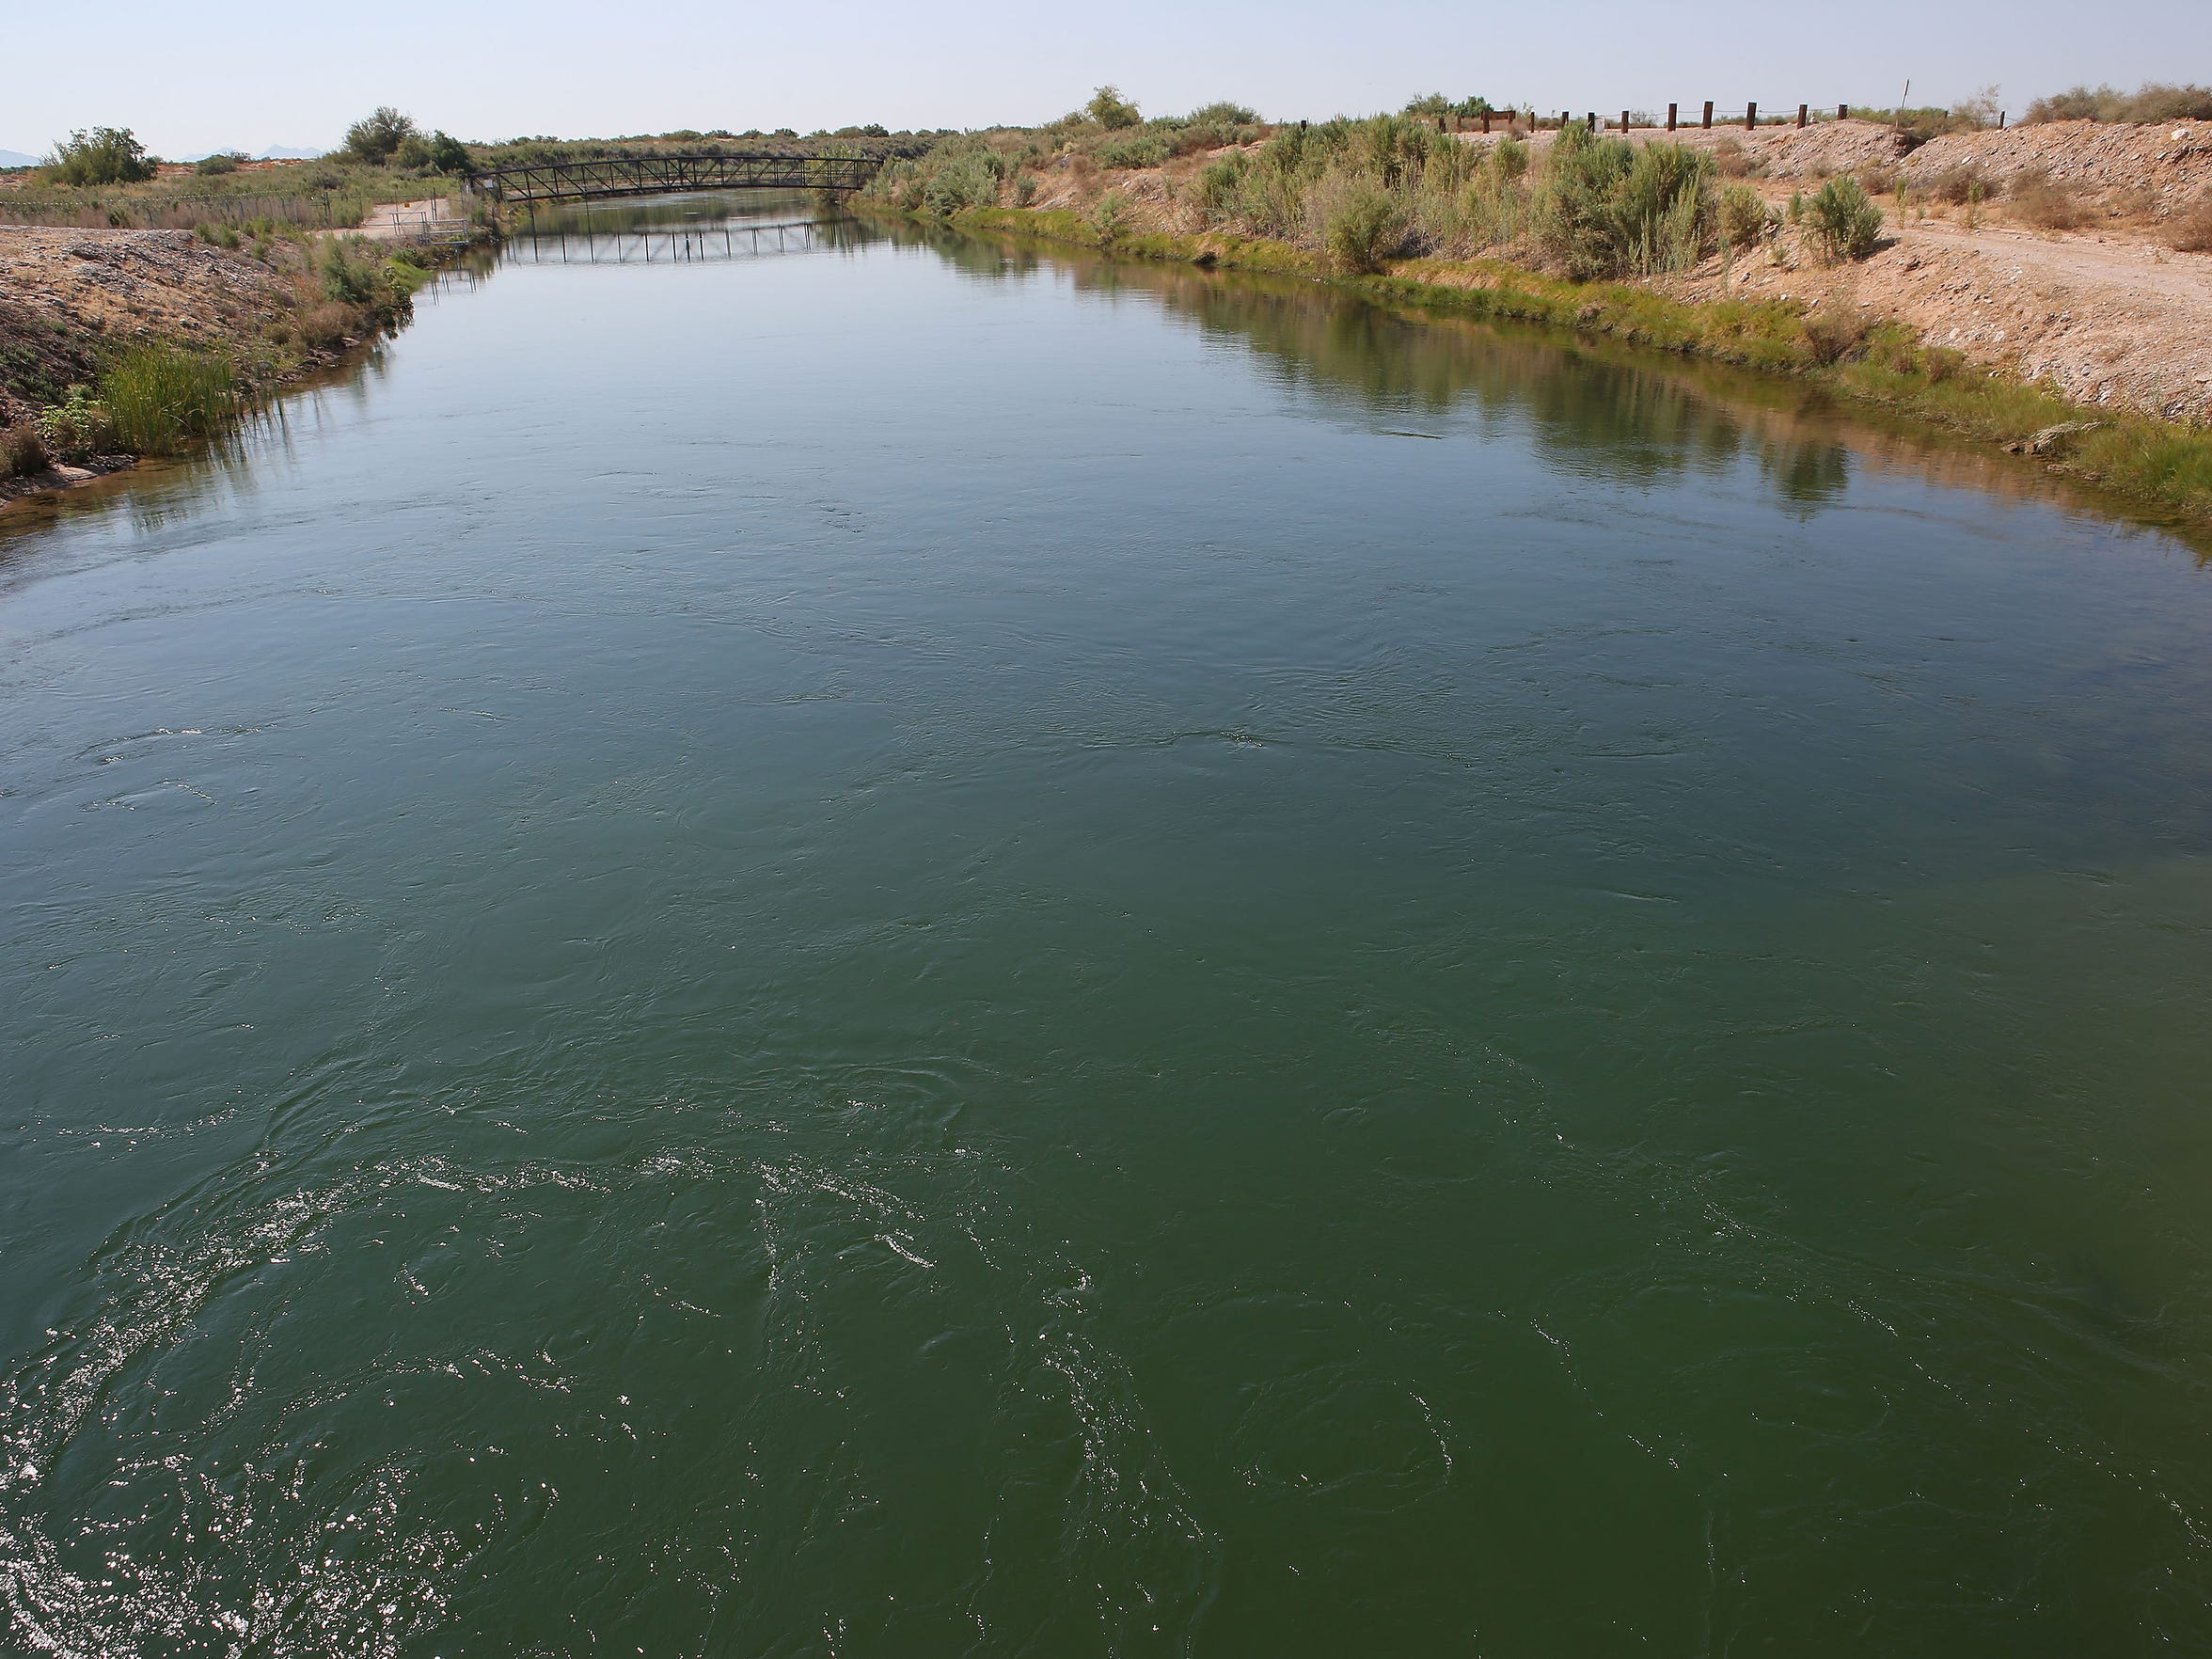 Water diverted from the Colorado River flows out of the Palo Verde Diversion Dam, entering the valley's canal system.